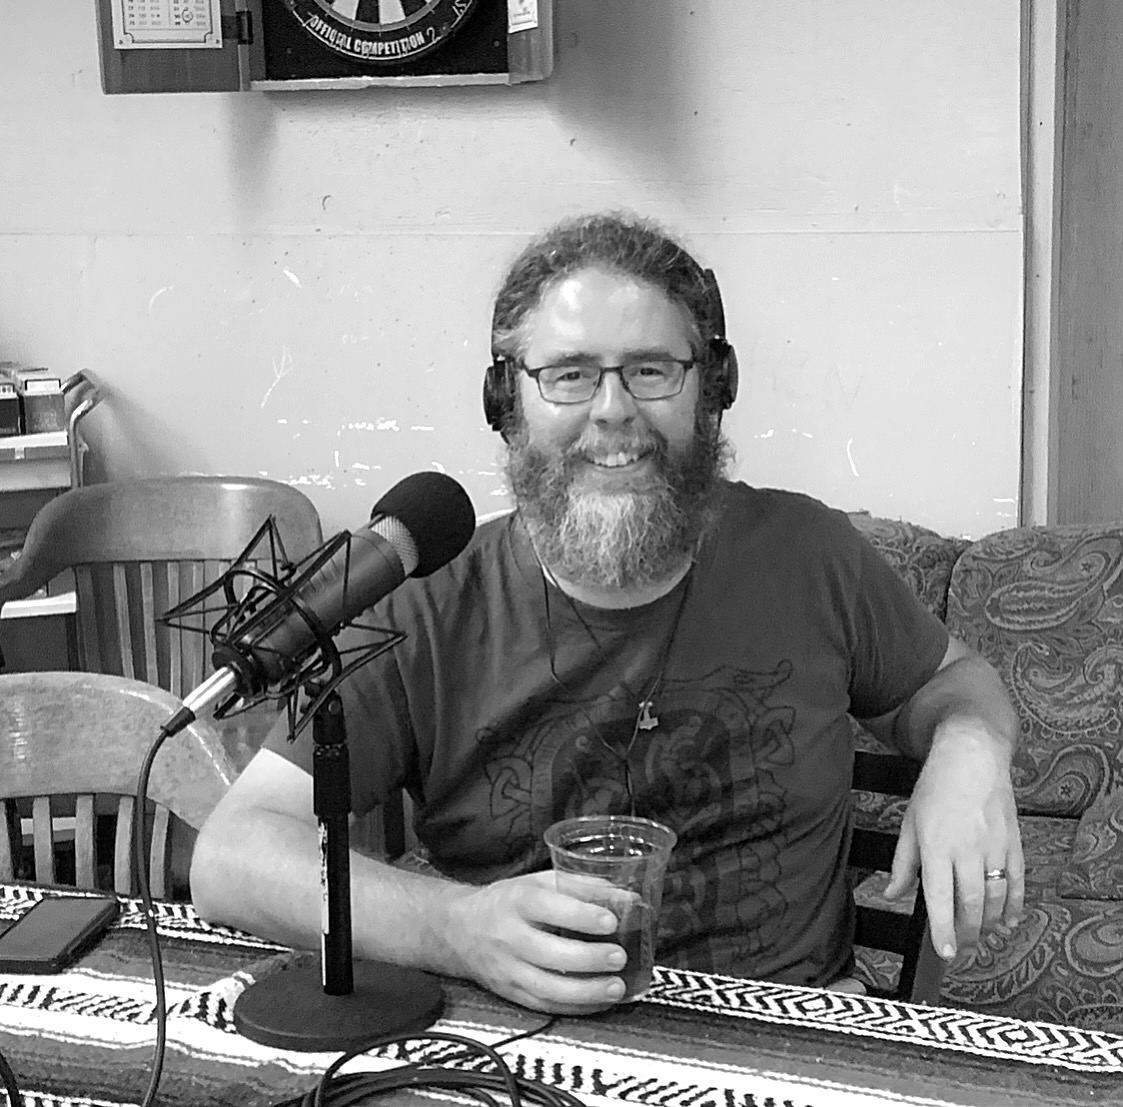 Jereme Zimmerman Author of Brew Beer Like a Yeti -– Portland Beer Podcast Episode 116 by Steven Shomler